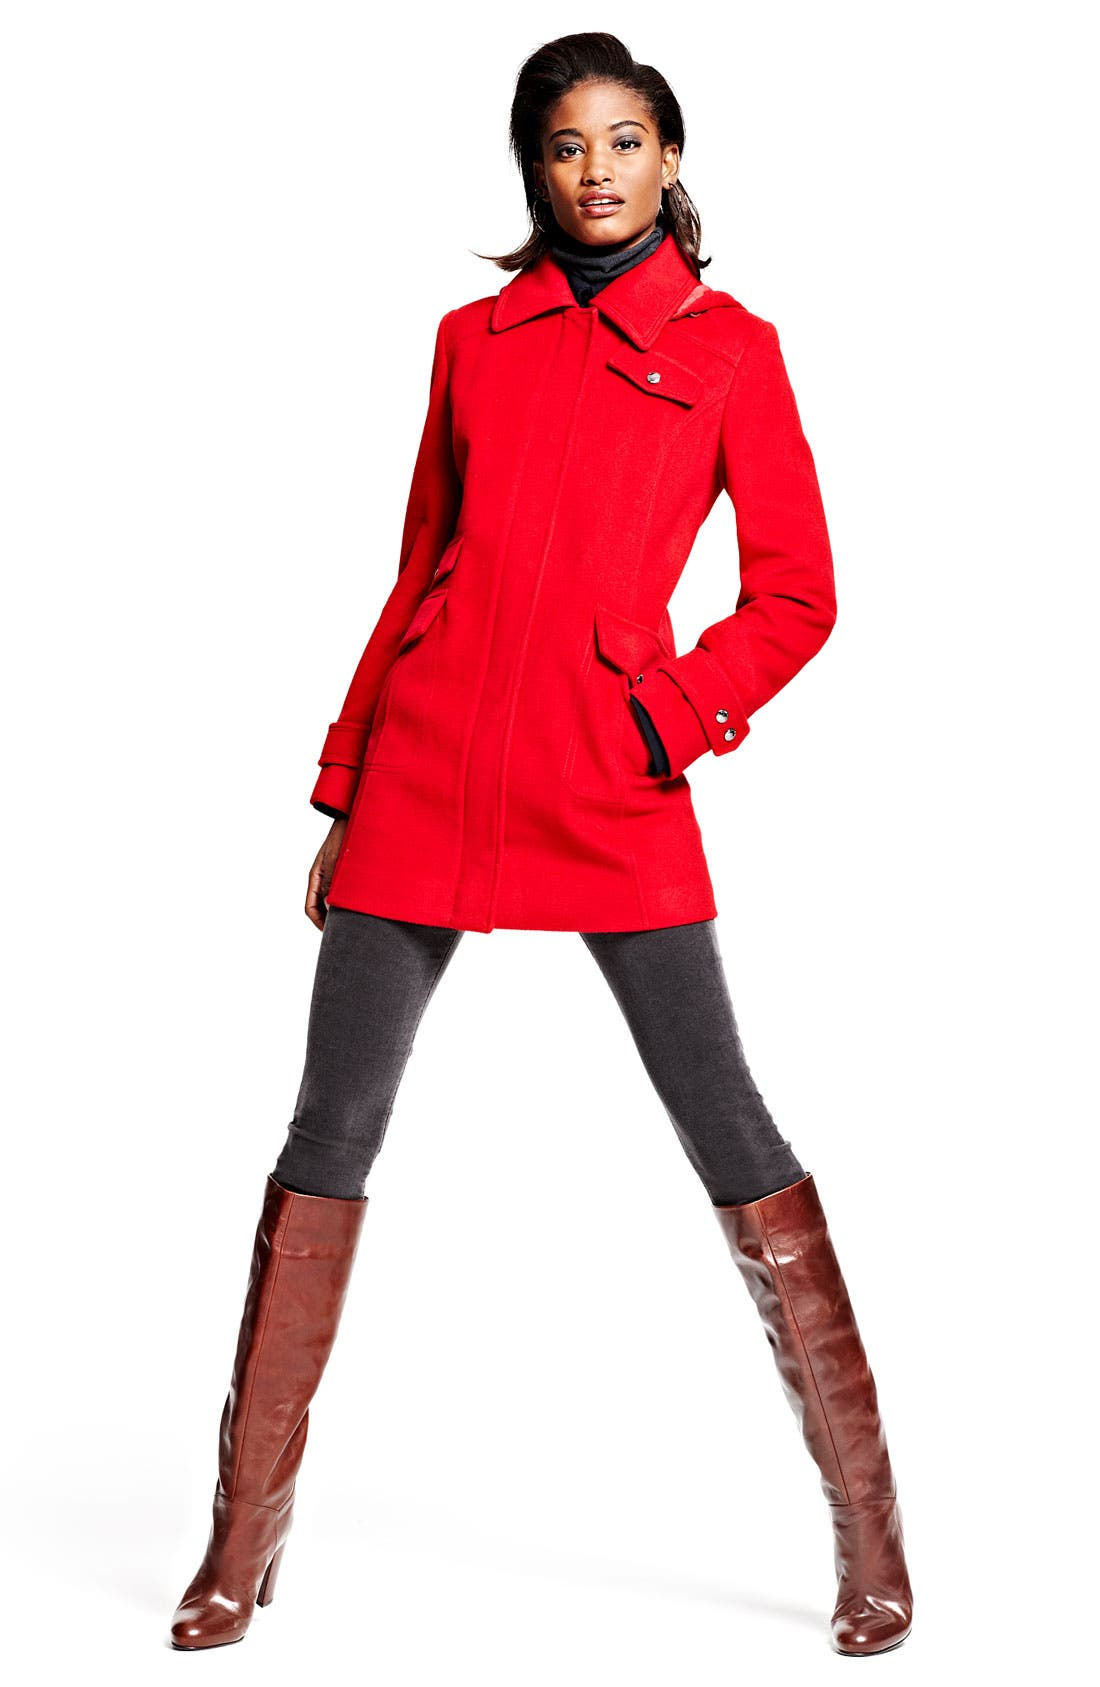 Alternate Image 1 Selected - Ellen Tracy Coat, KUT from the Kloth Cords & Stuart Weitzman Boot